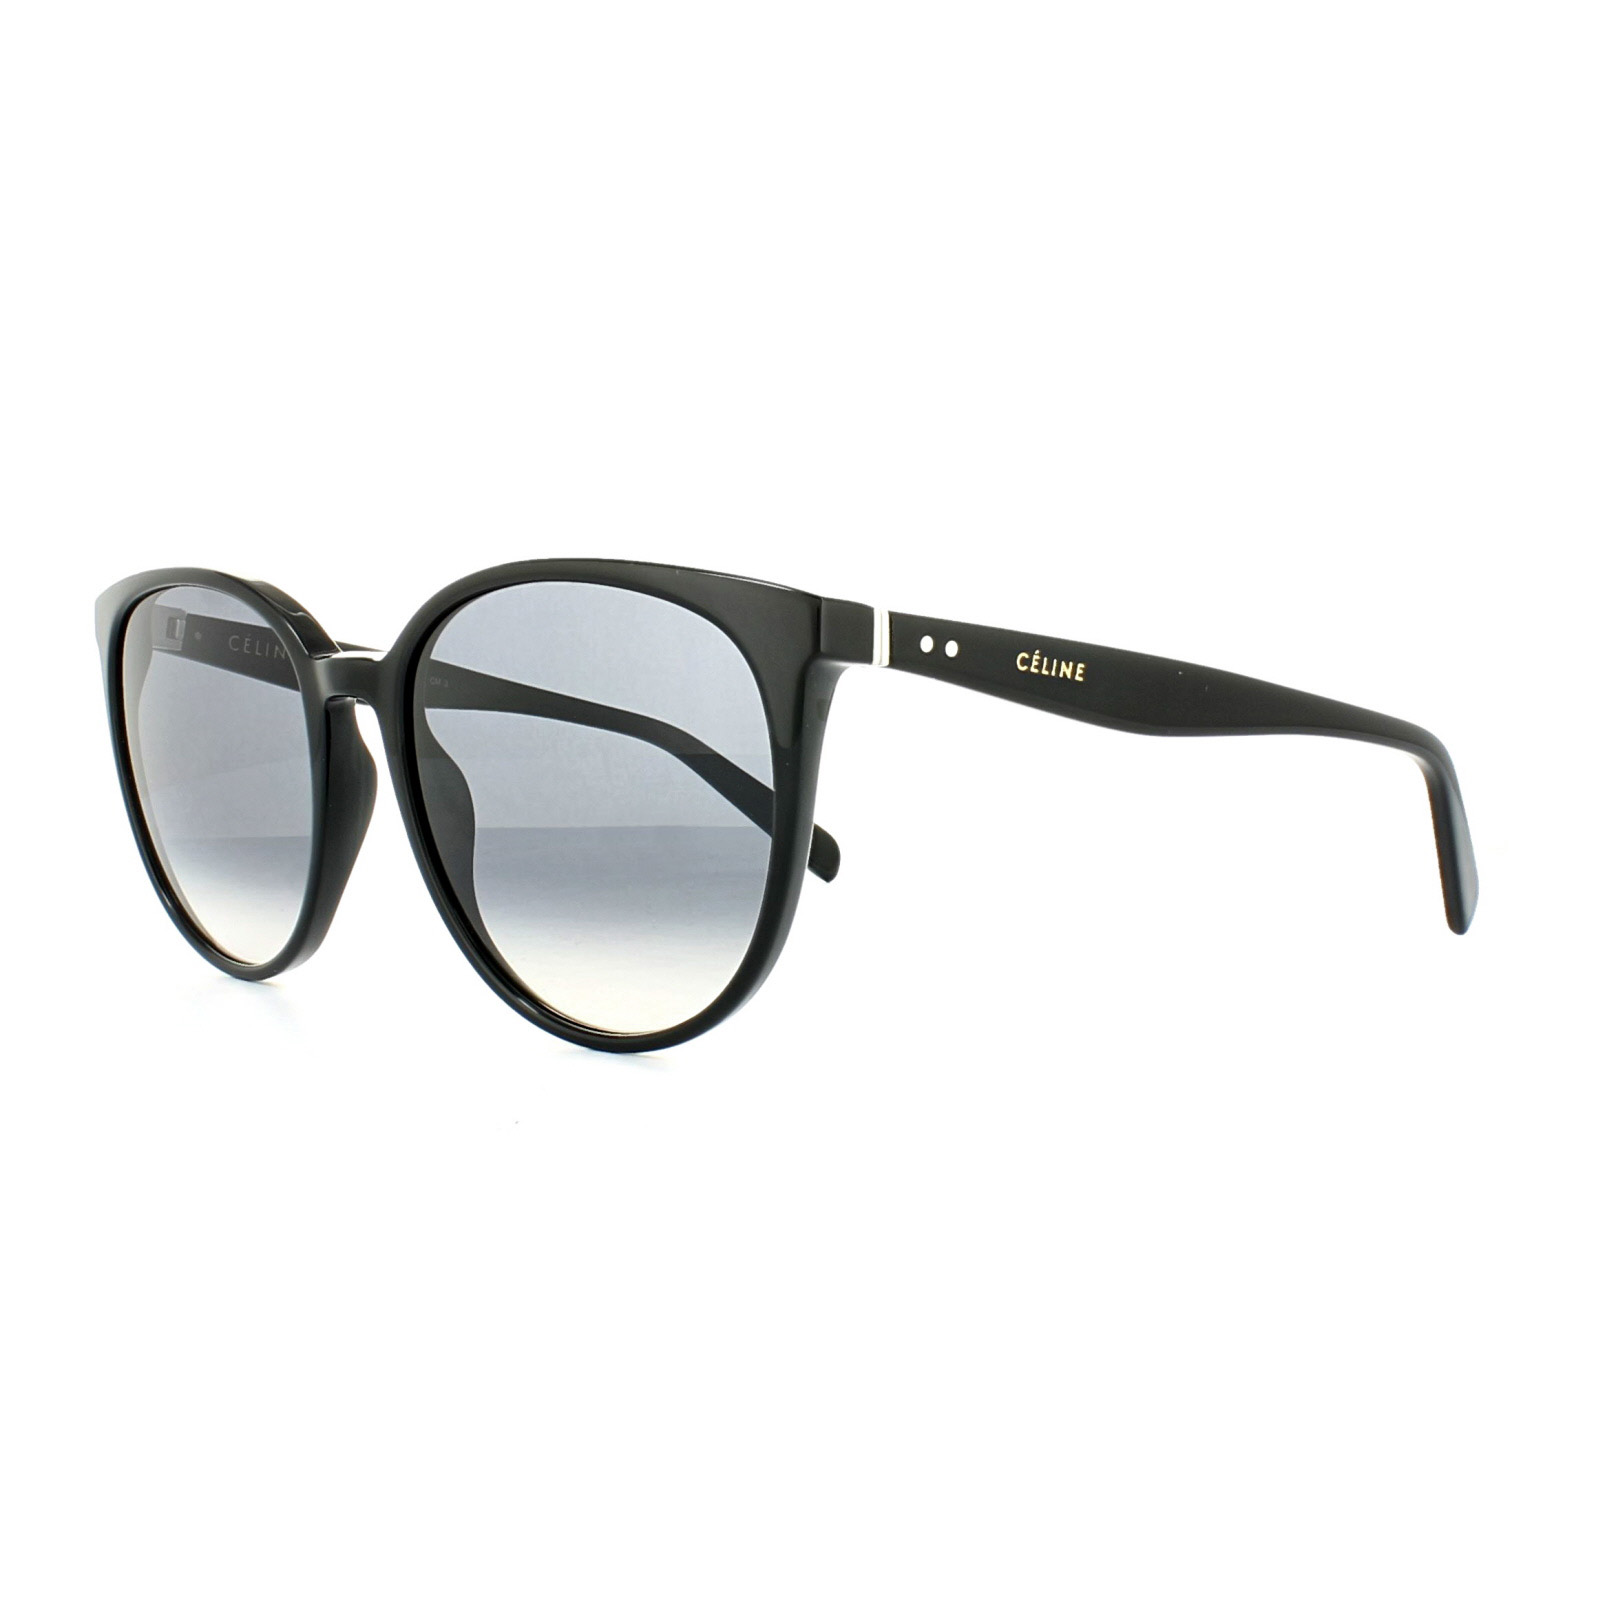 533a5c445705 Cheap Celine 41068 S Thin Mary Sunglasses - Discounted Sunglasses